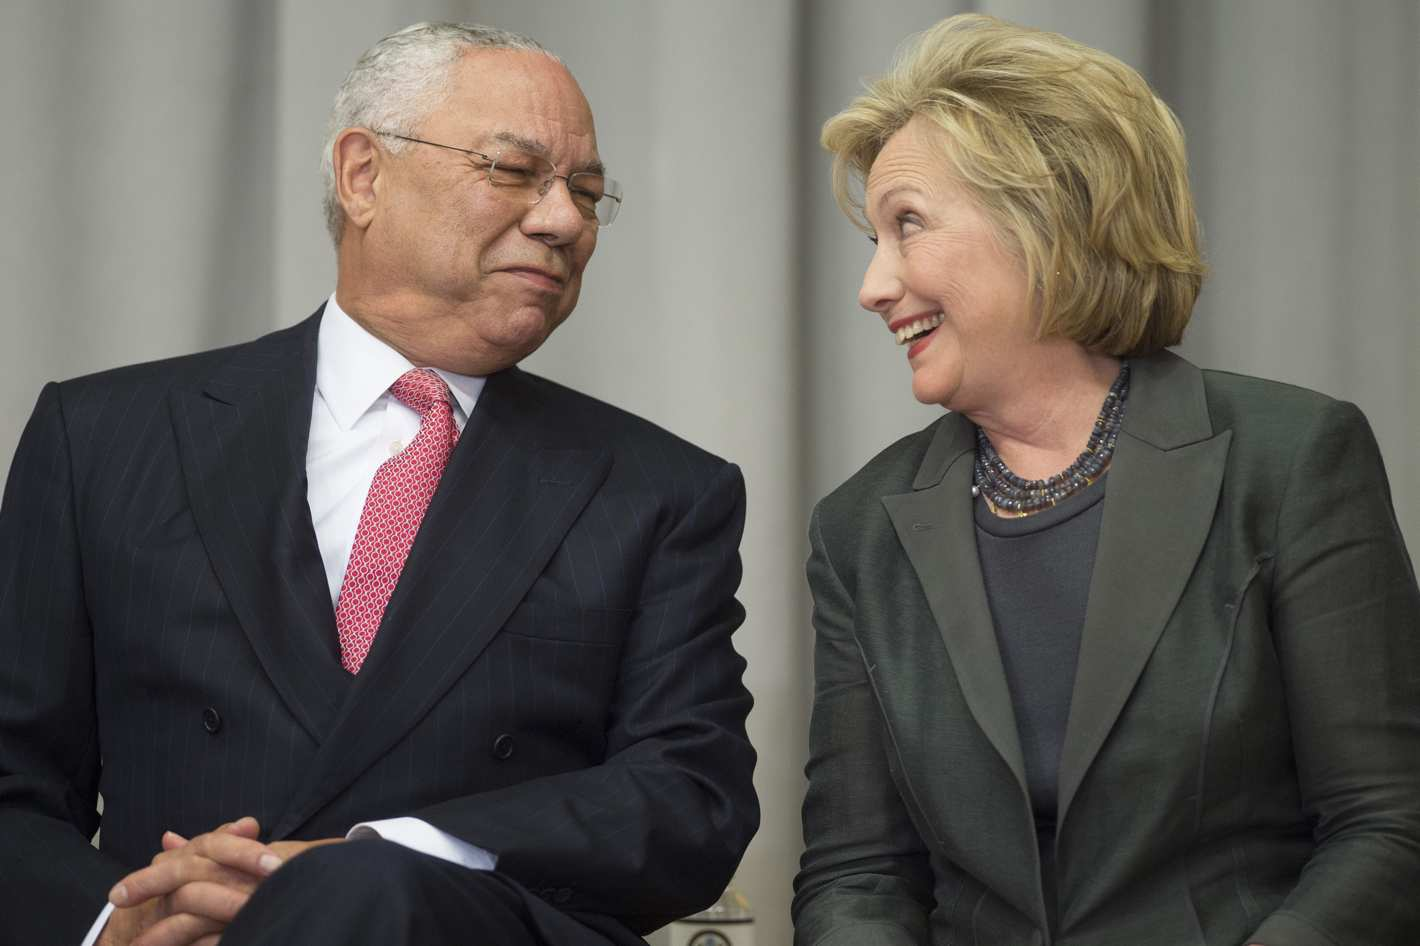 Gen. Colin Powell Refuses to Be Thrown Under Hillary's Bus [VIDEO]